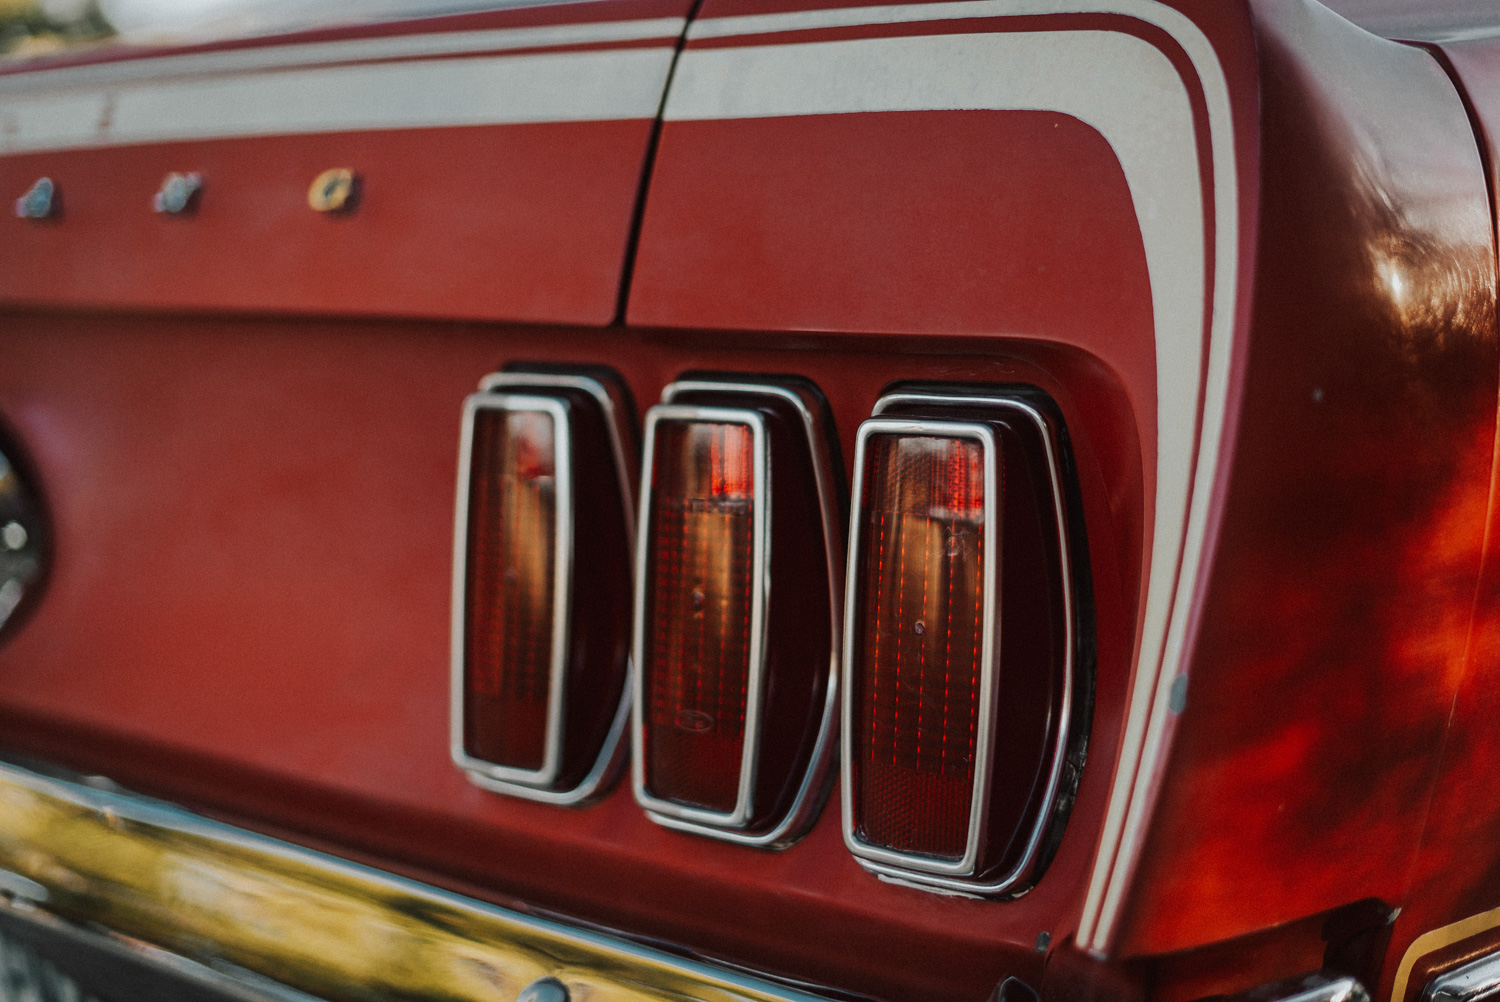 1969 Ford Mustang Mach 1 taillight detail